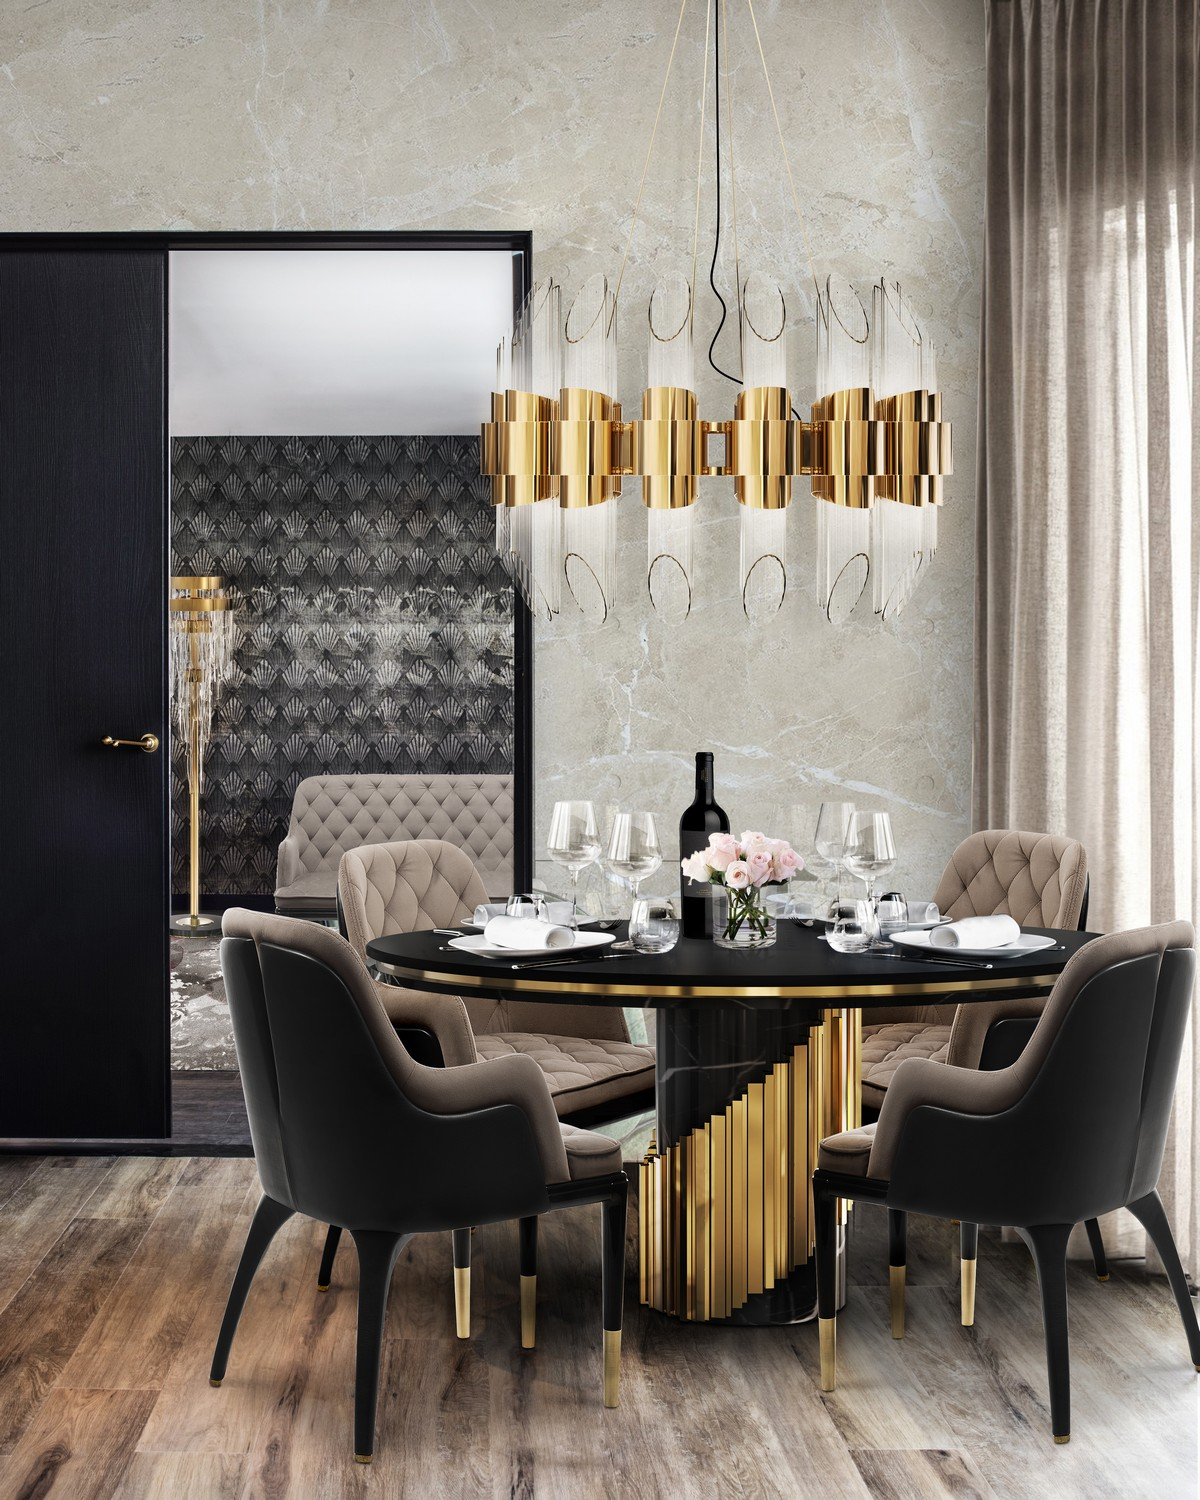 Maison et Objet 2019: Exclusive Dining Chairs at Covet House Maison et Objet Maison et Objet 2019: Exclusive Dining Chairs at Covet House charla2